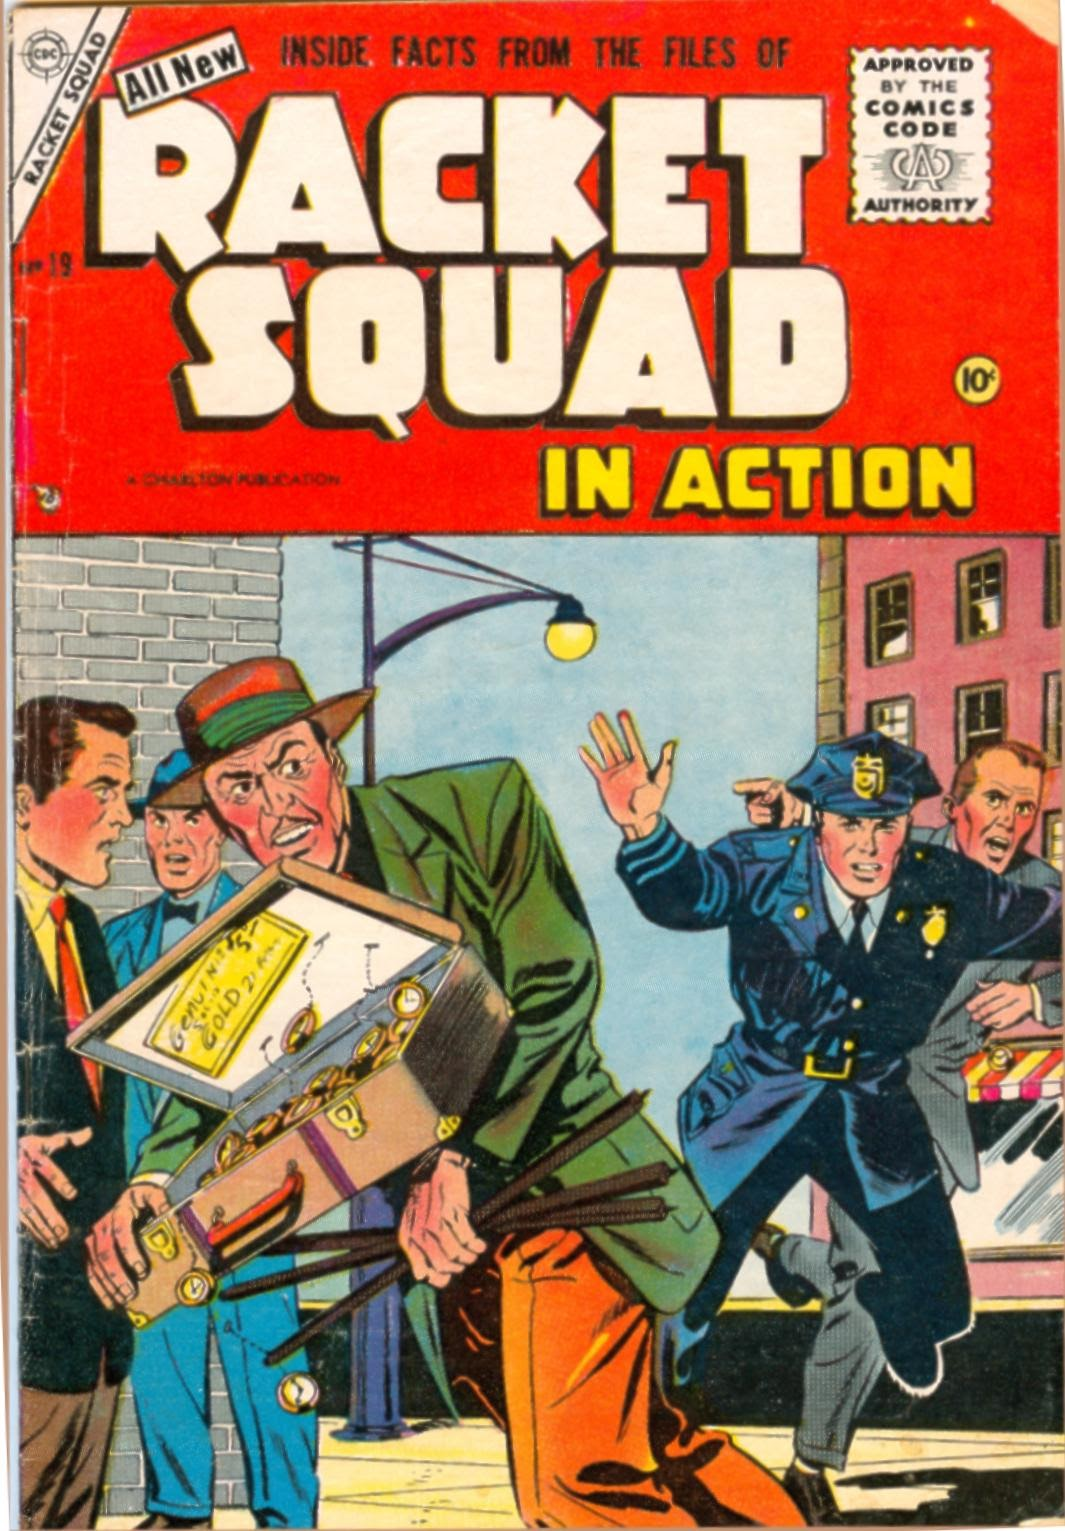 Read online Racket Squad in Action comic -  Issue #19 - 1